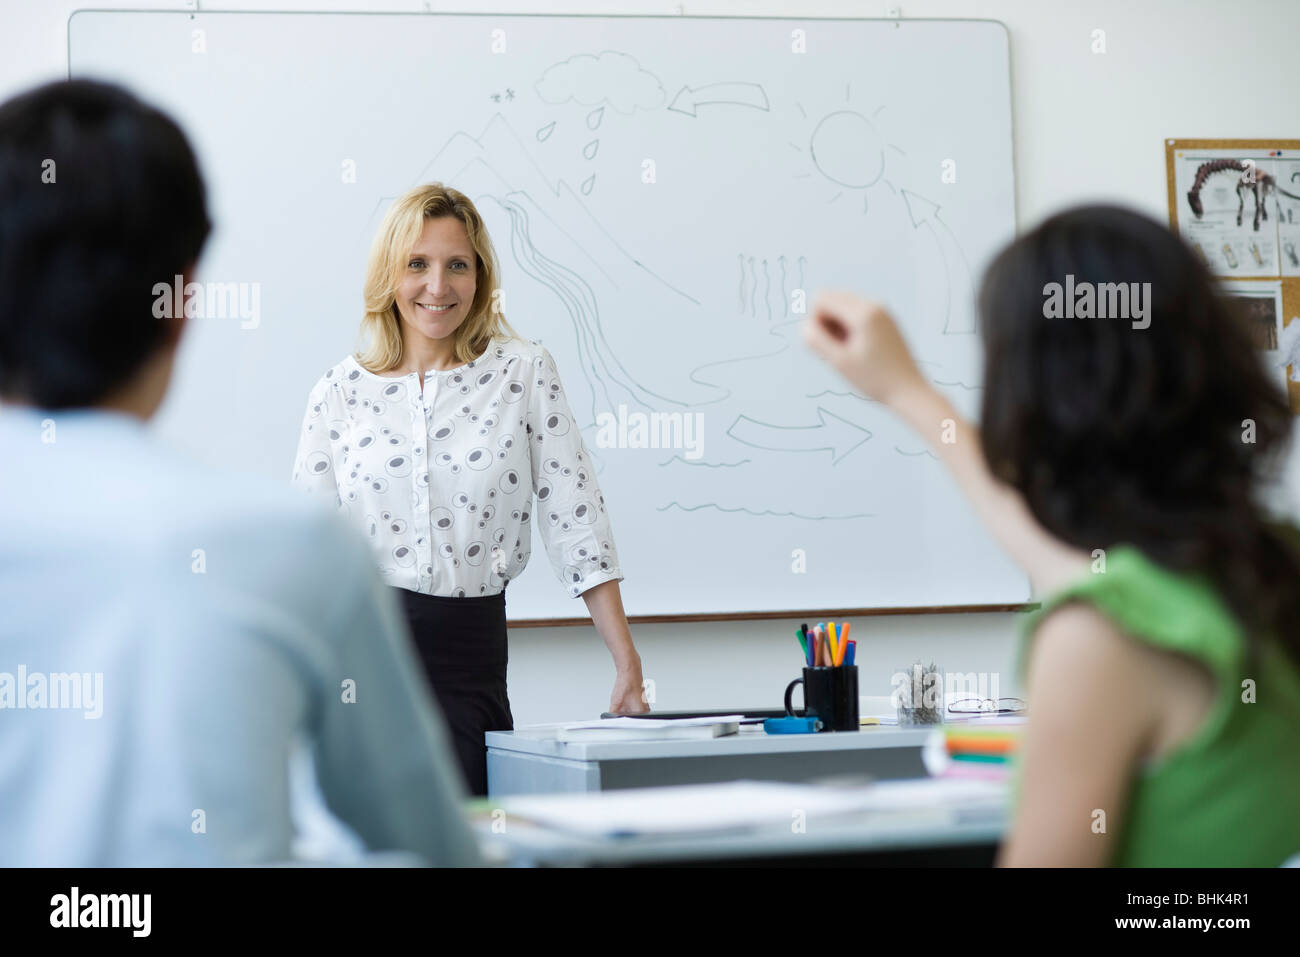 High school teacher standing in front of class, answering question - Stock Image